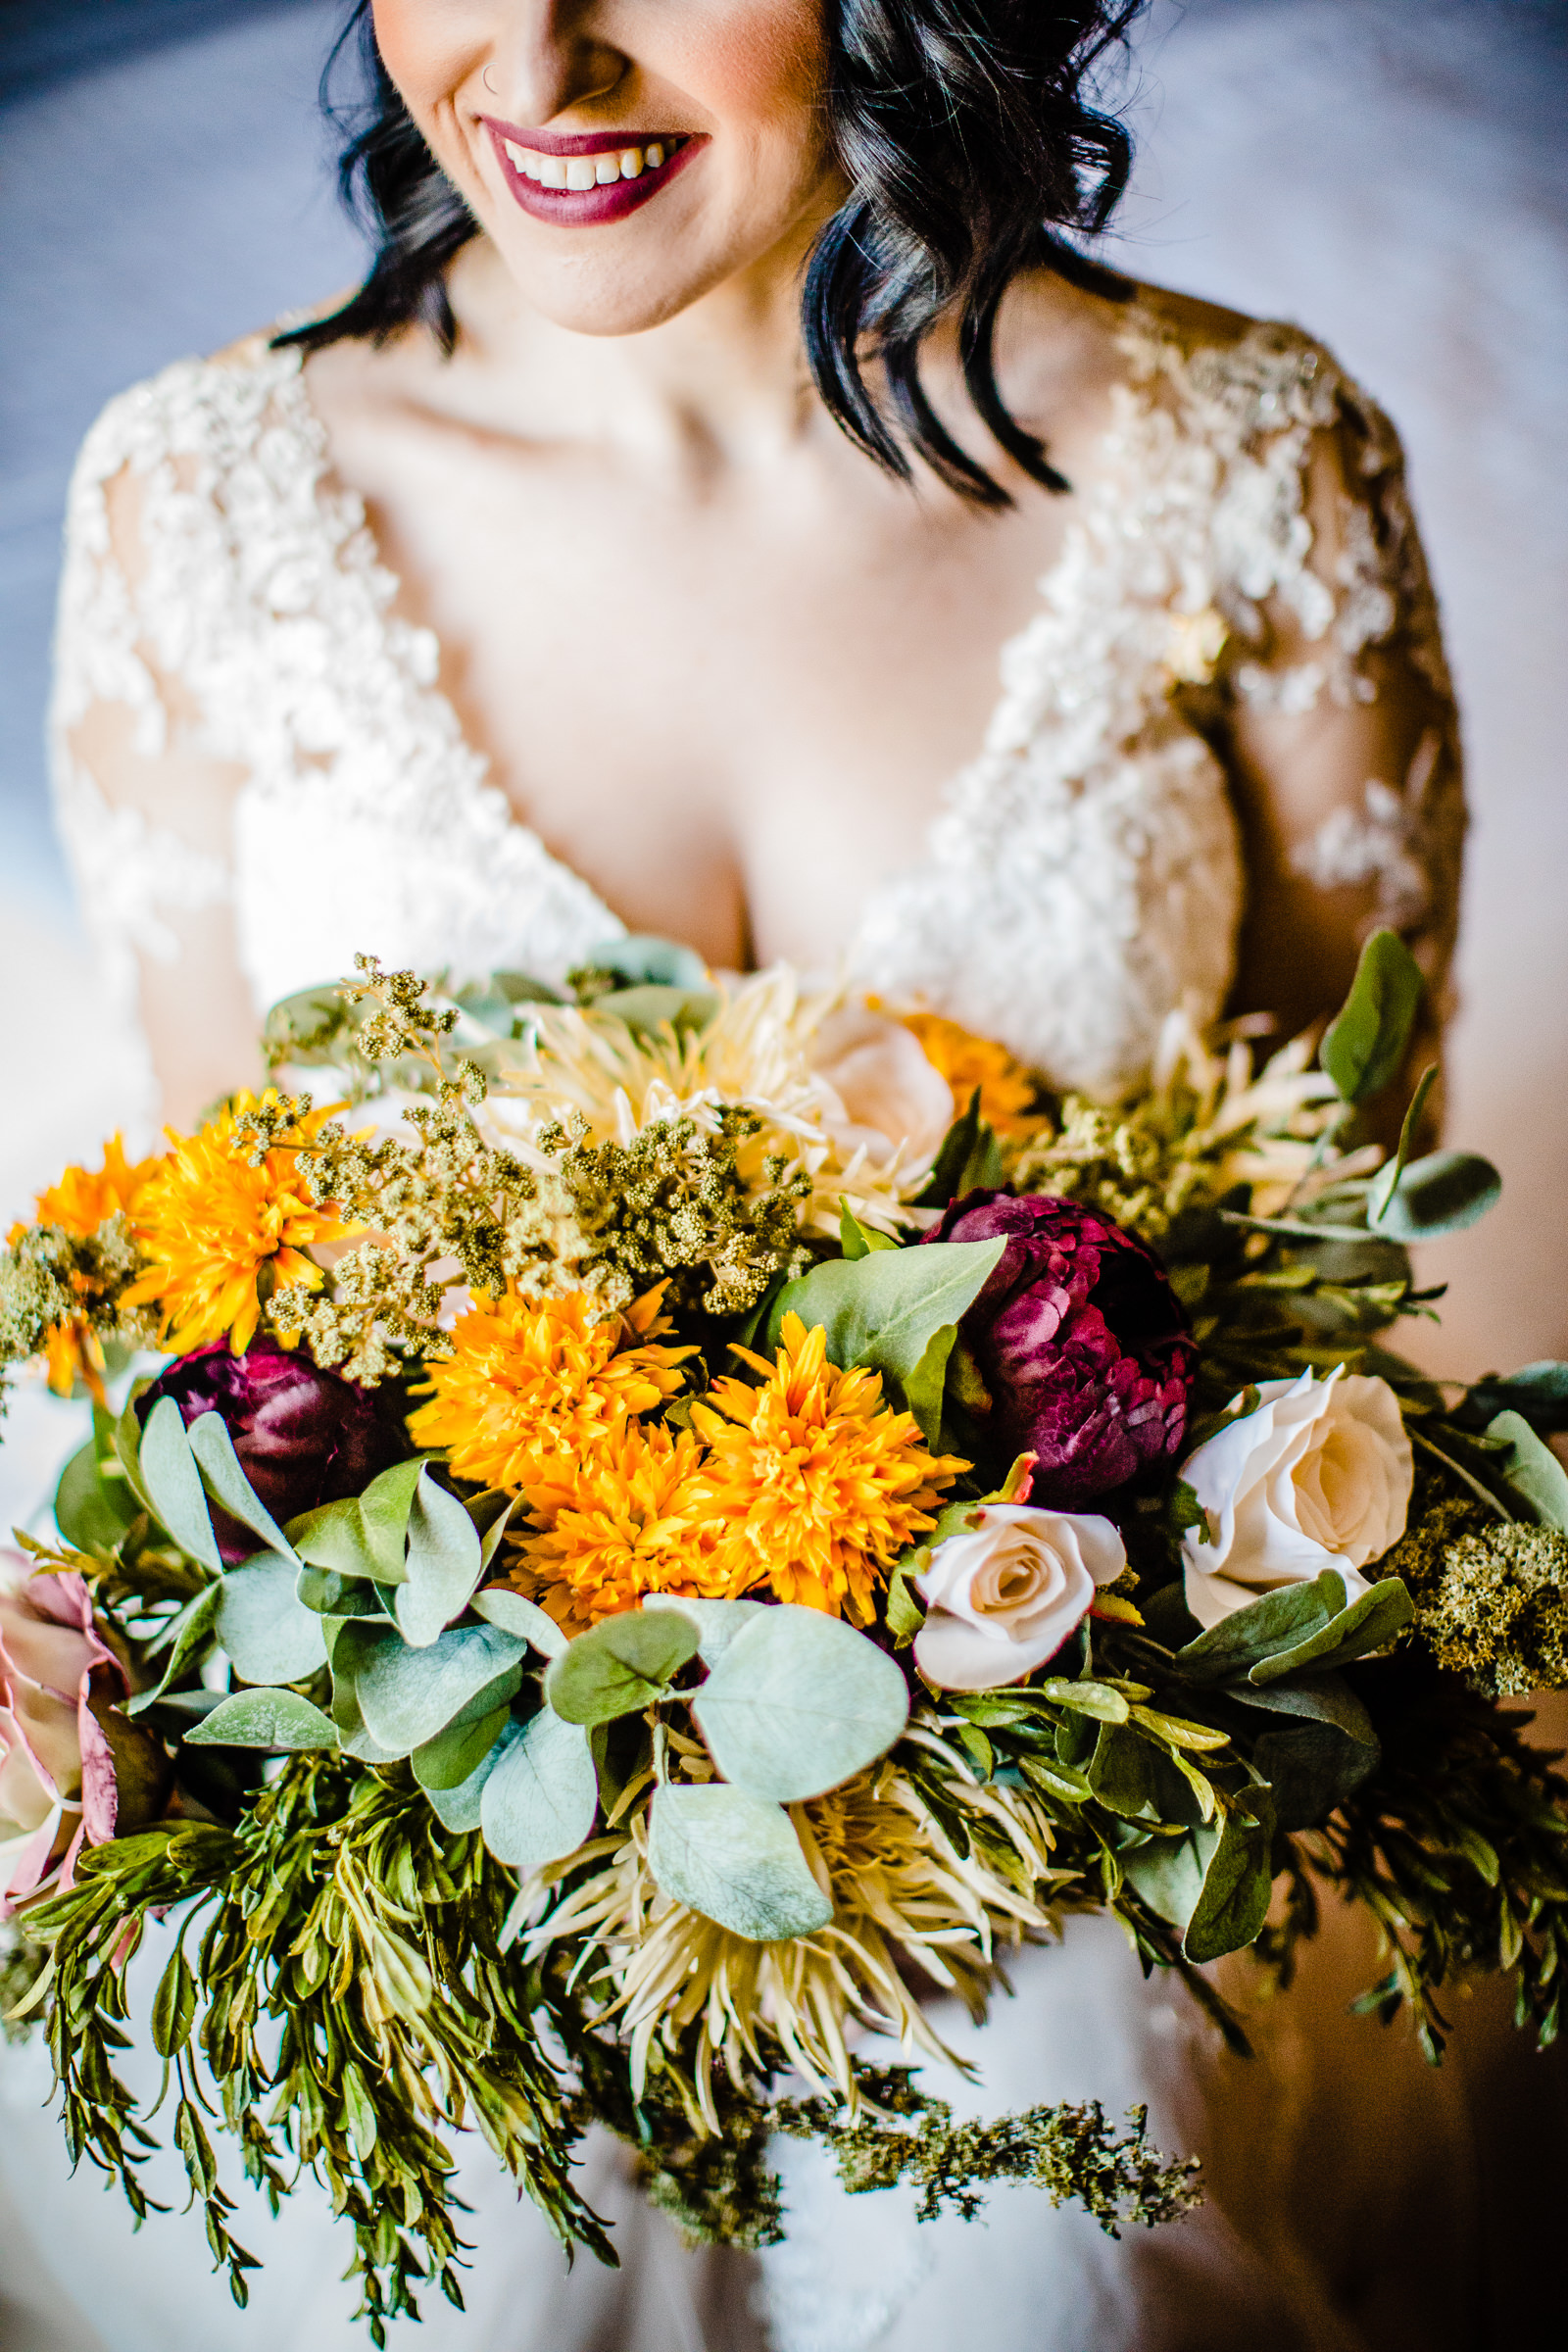 bride-with-fall-bouquet-photo-by-daniel-nydick-photography